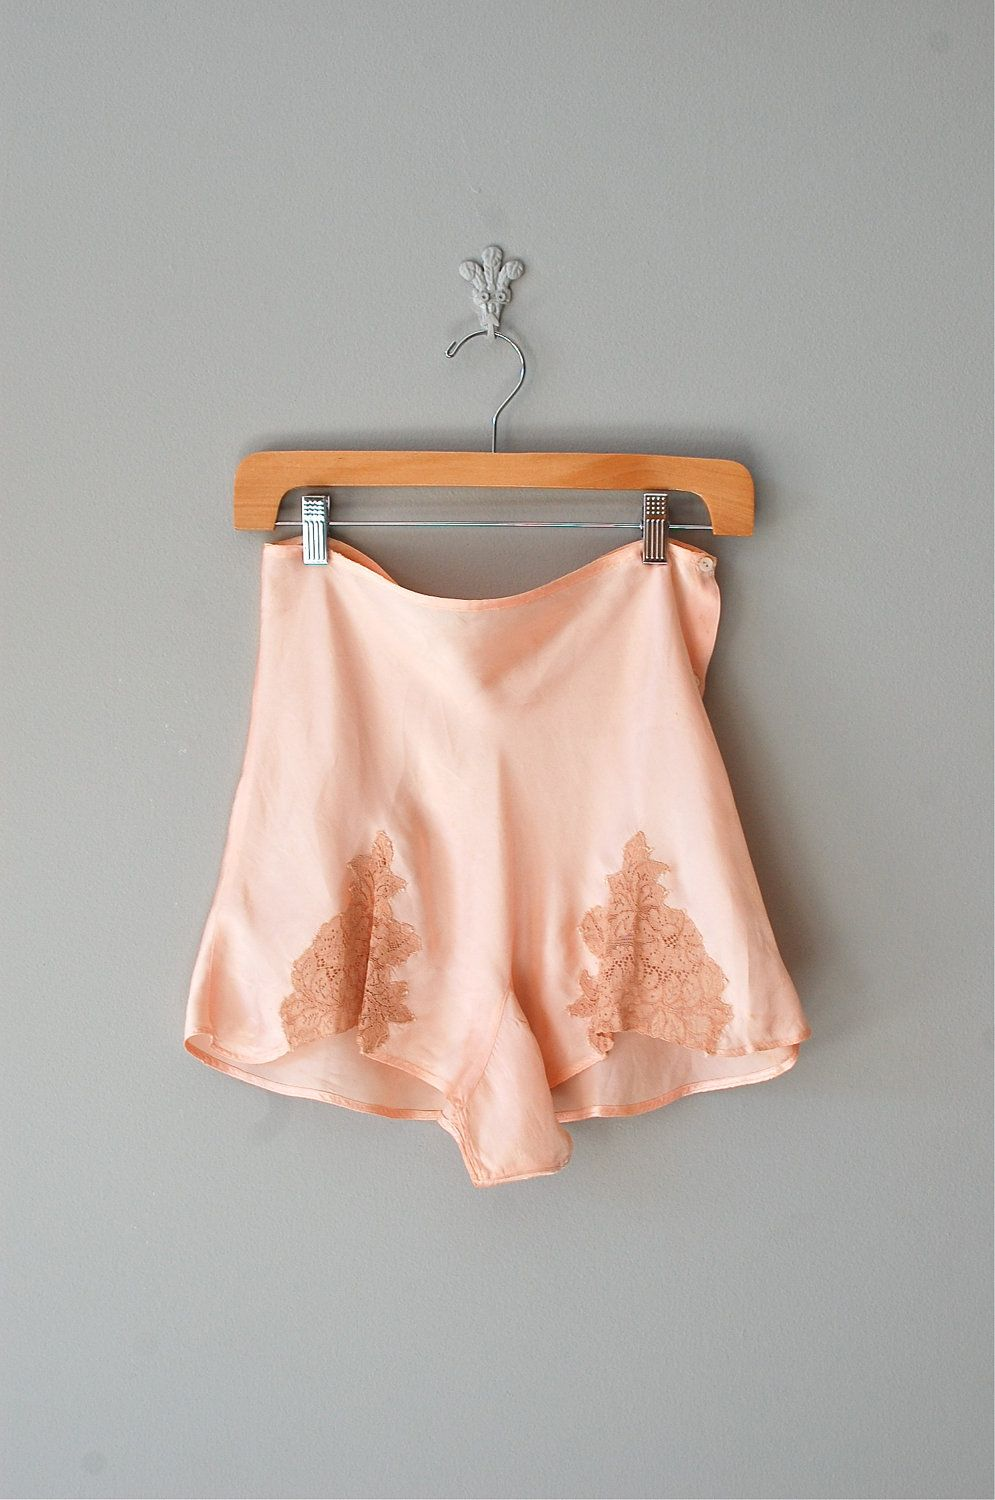 d8987abd1dd 30s tap pants   1930s lingerie - I would live in these